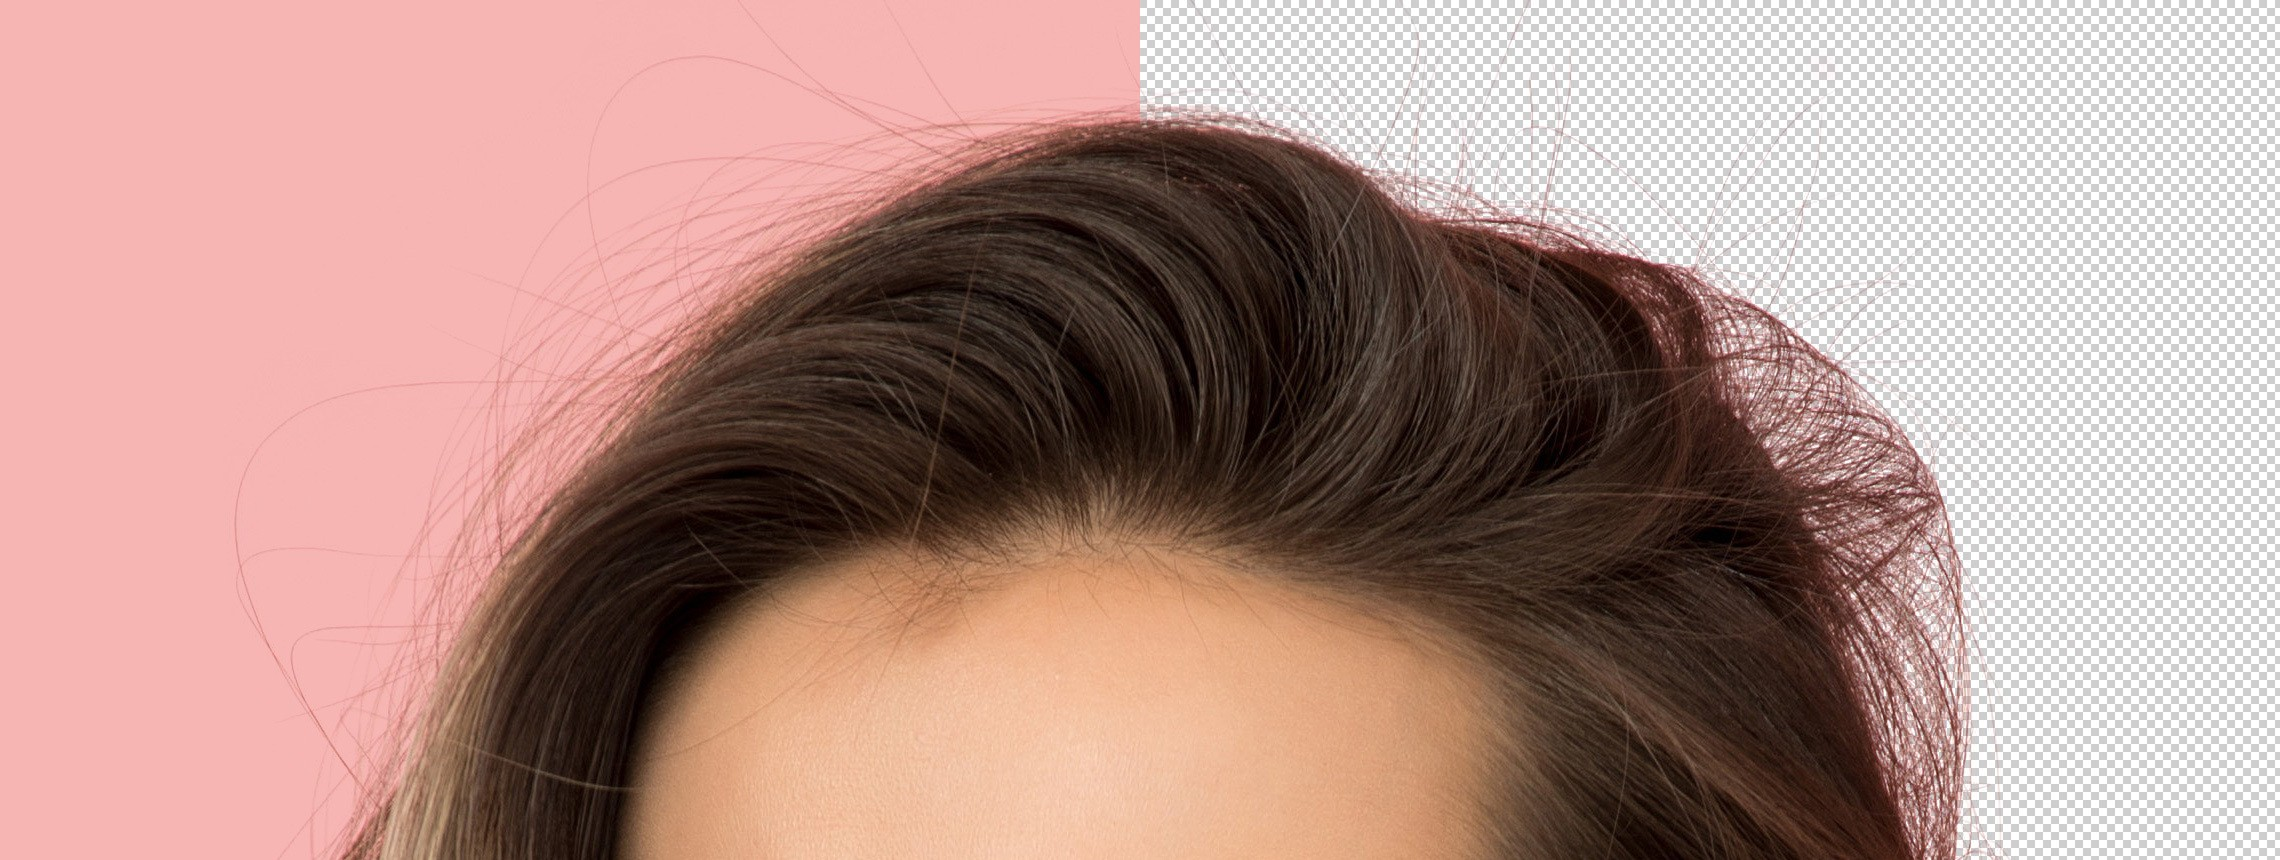 How to Easily Erase Background from Hair: the Photoshop Background Eraser Tool